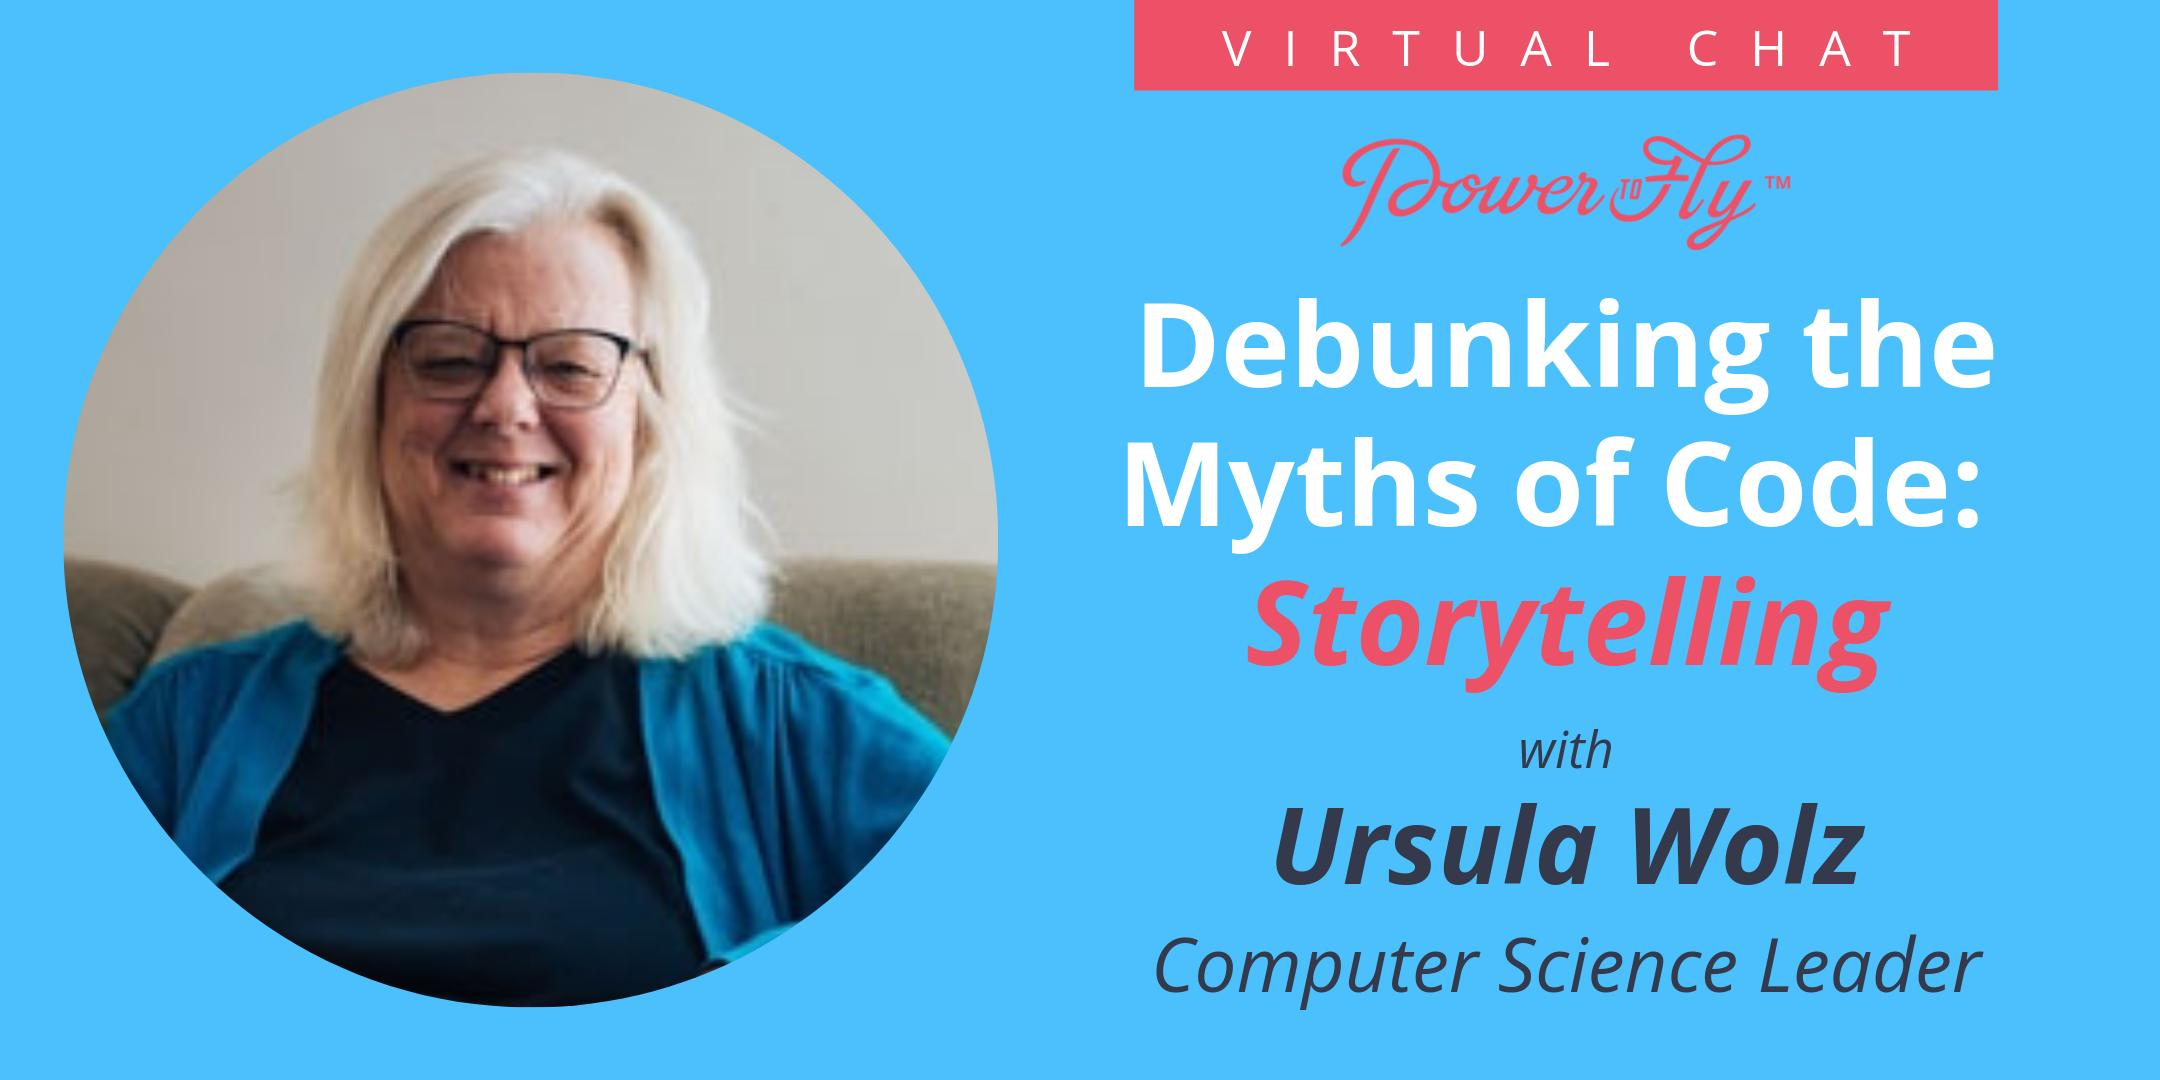 Debunking the Myths of Code: Storytelling